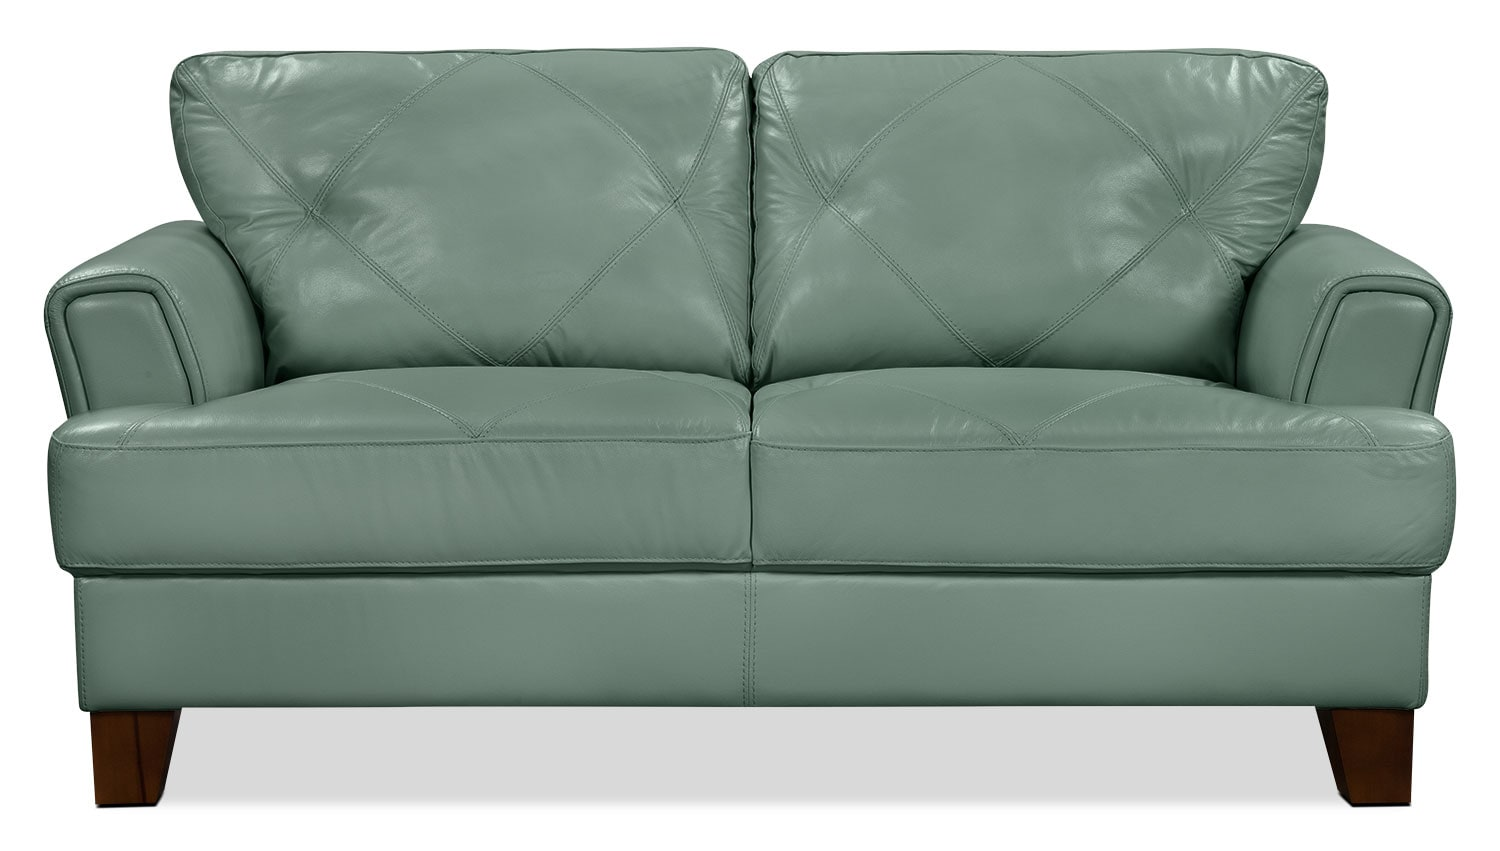 Living Room Furniture - Vita 100% Genuine Leather Loveseat – Sea Foam